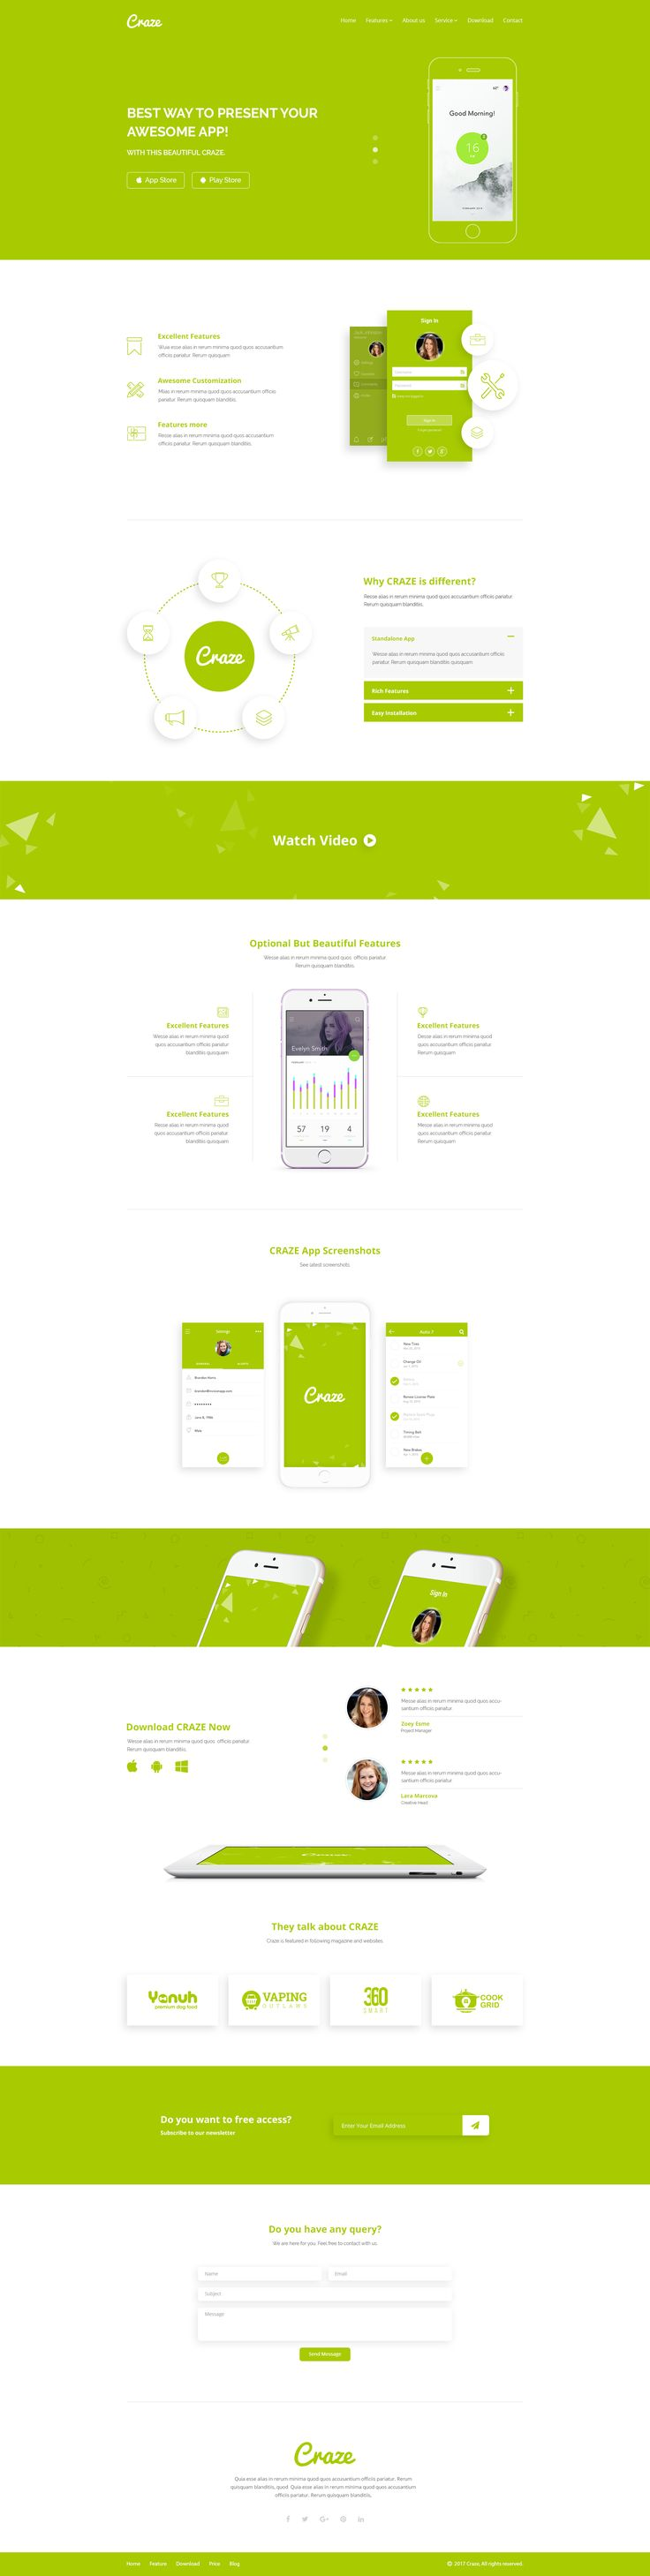 Craze - App Landing PSD Template by CodePassenger | ThemeForest